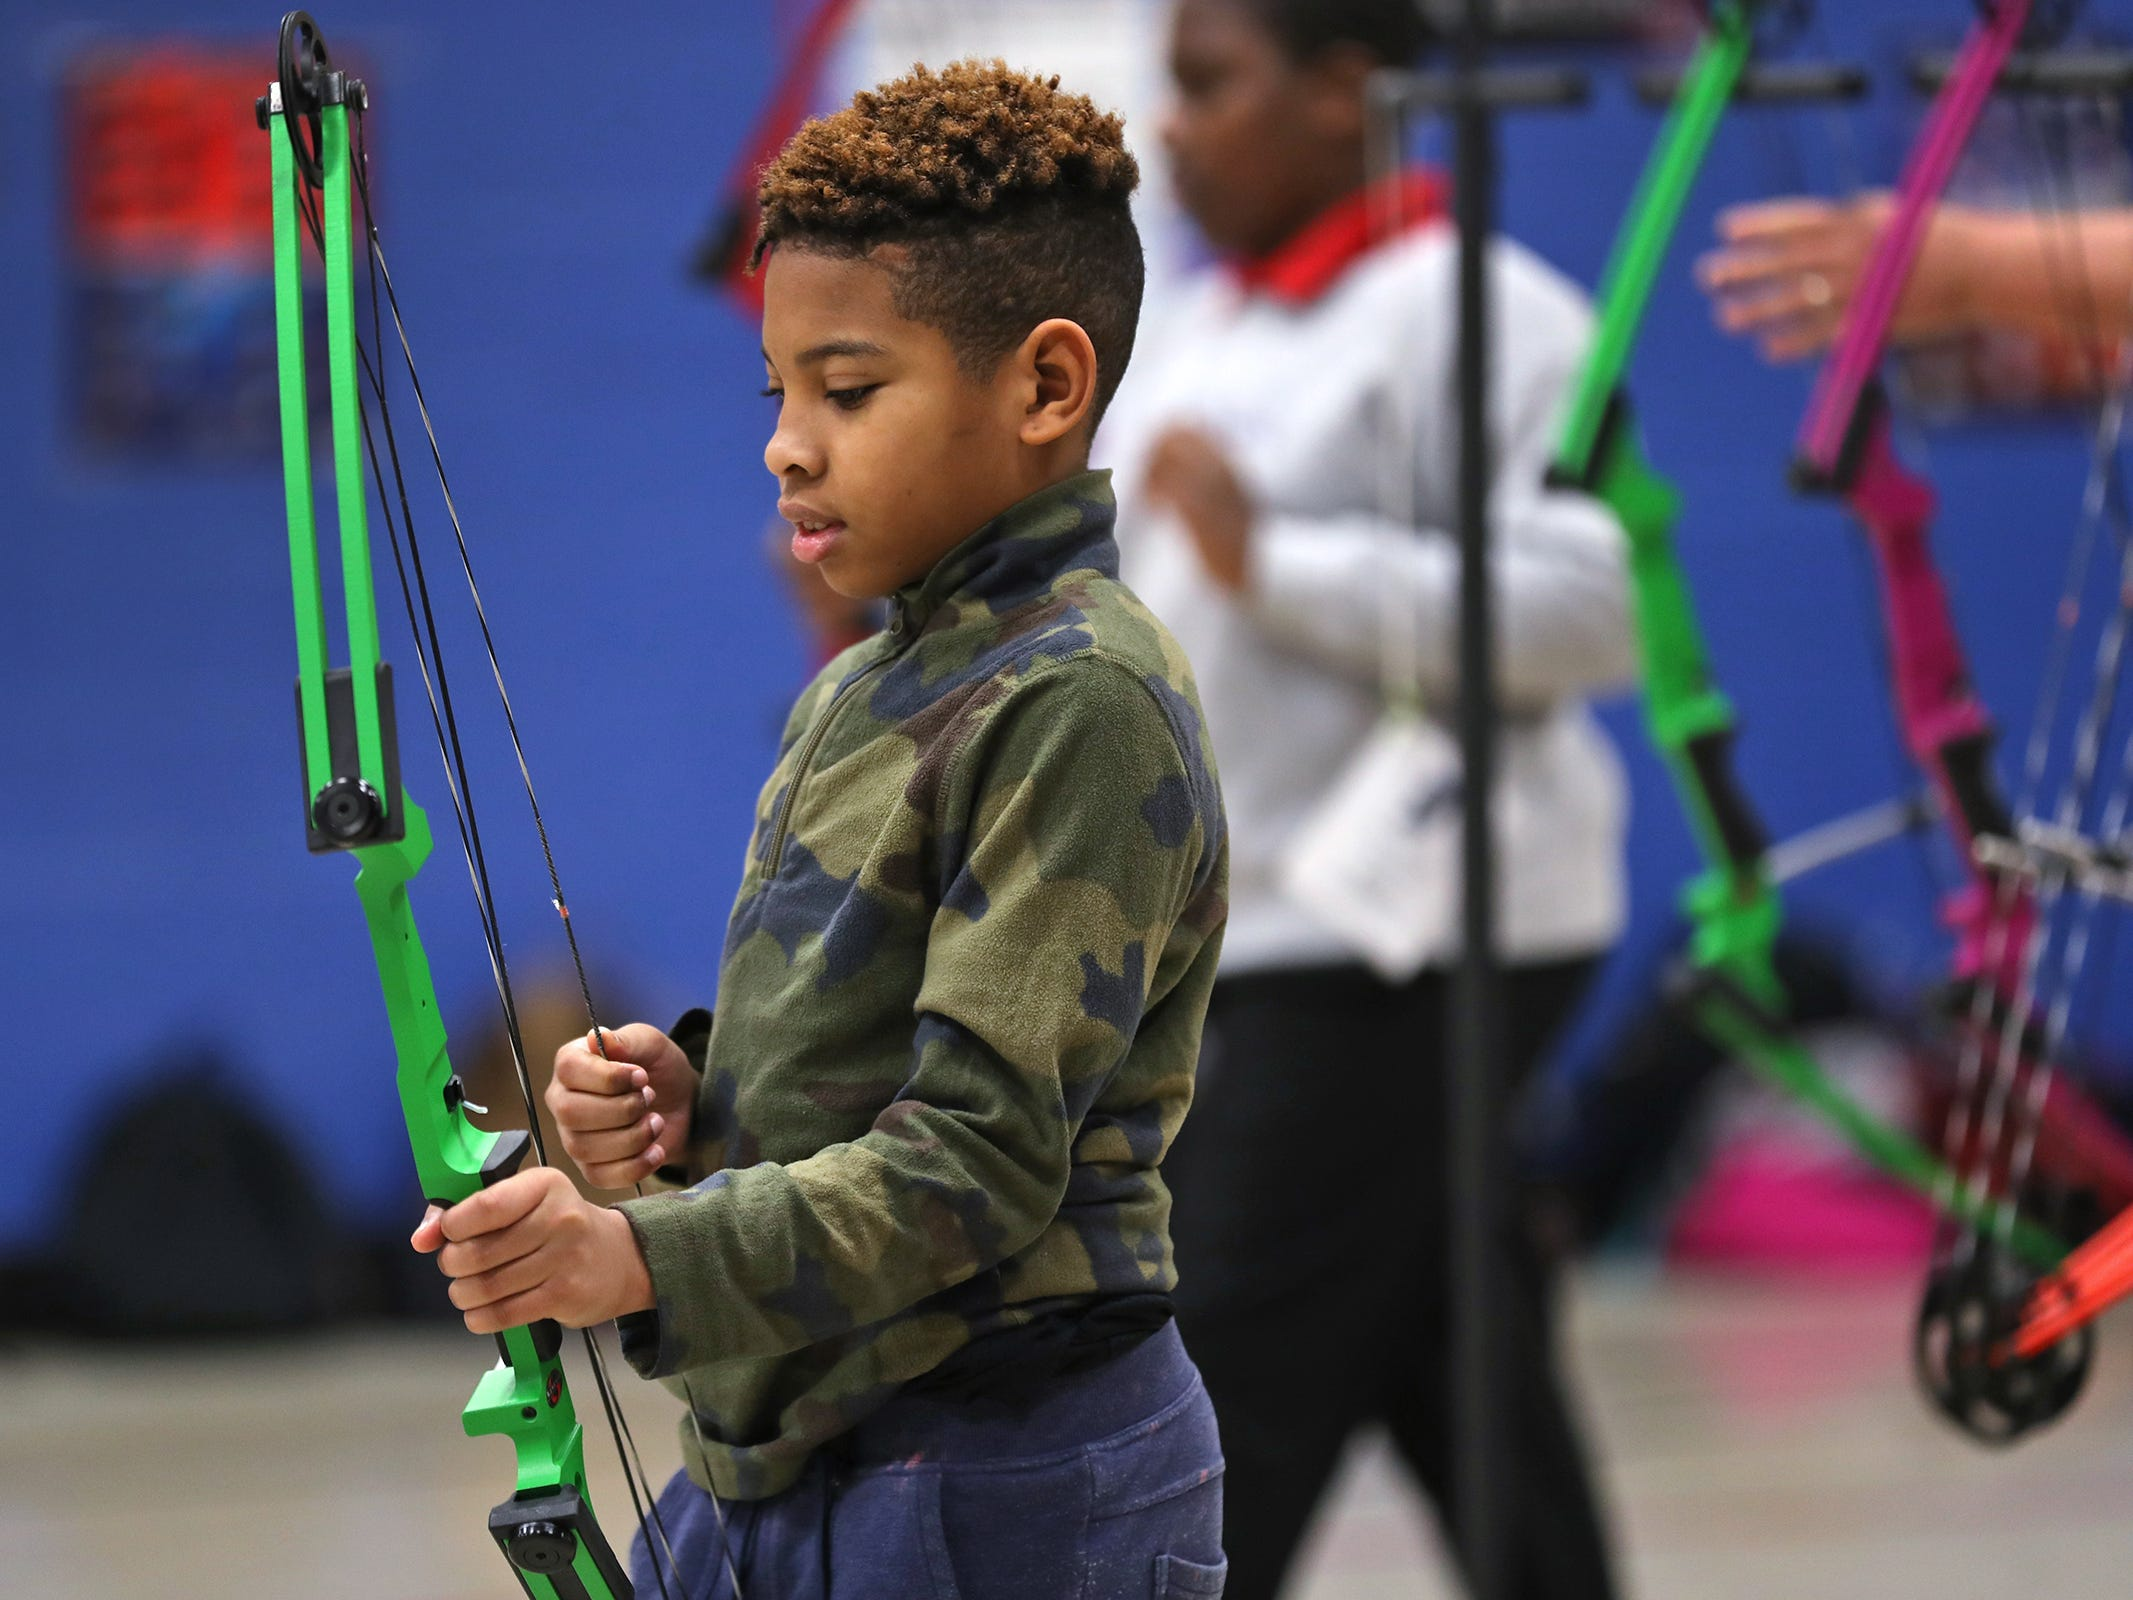 Courtney Washington gets his bow ready before shooting, during archery class at Lew Wallace Elementary IPS 107, Thursday, Dec. 20, 2018.